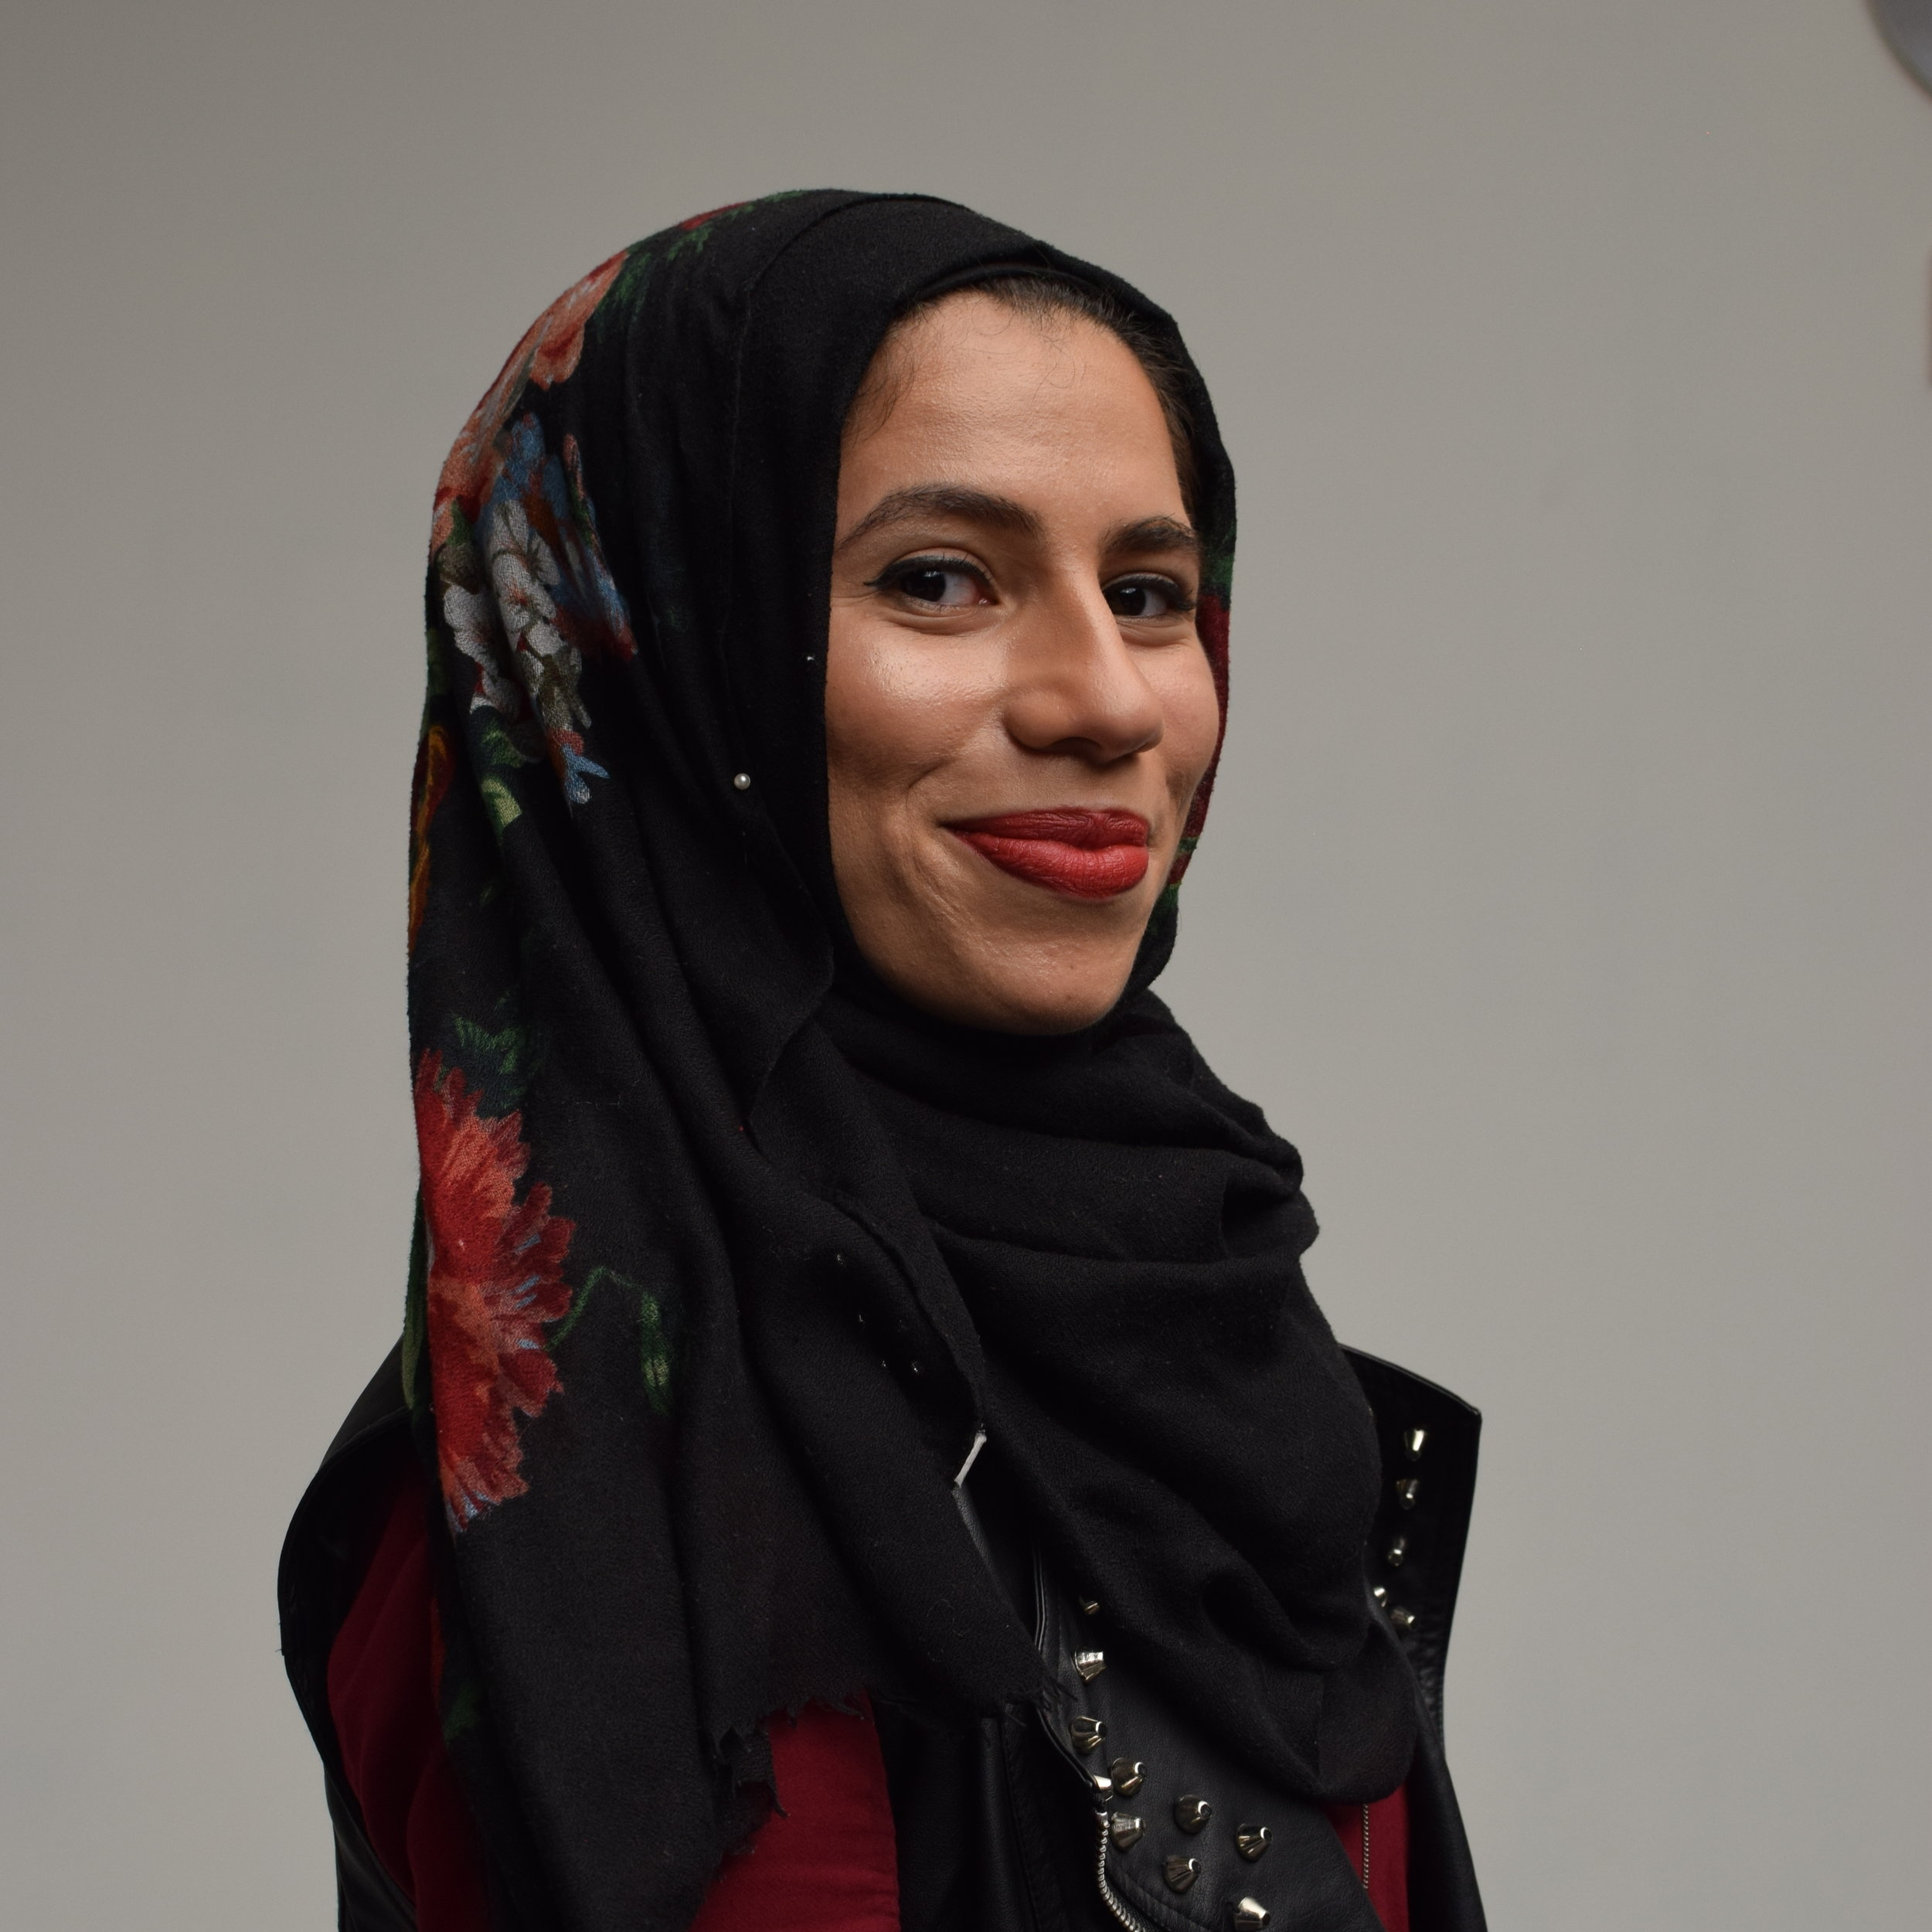 AMIRA    Ragda Izar is a recent graduate from the University of Illinois at Chicago and is pursuing a career in medicine with a focus on underserved communities. Izar is currently producing her podcast,  3ayb , a series that explores taboo issues in MENA culture. She plays the outlandish Amira in  The Girl Deep Down Below.